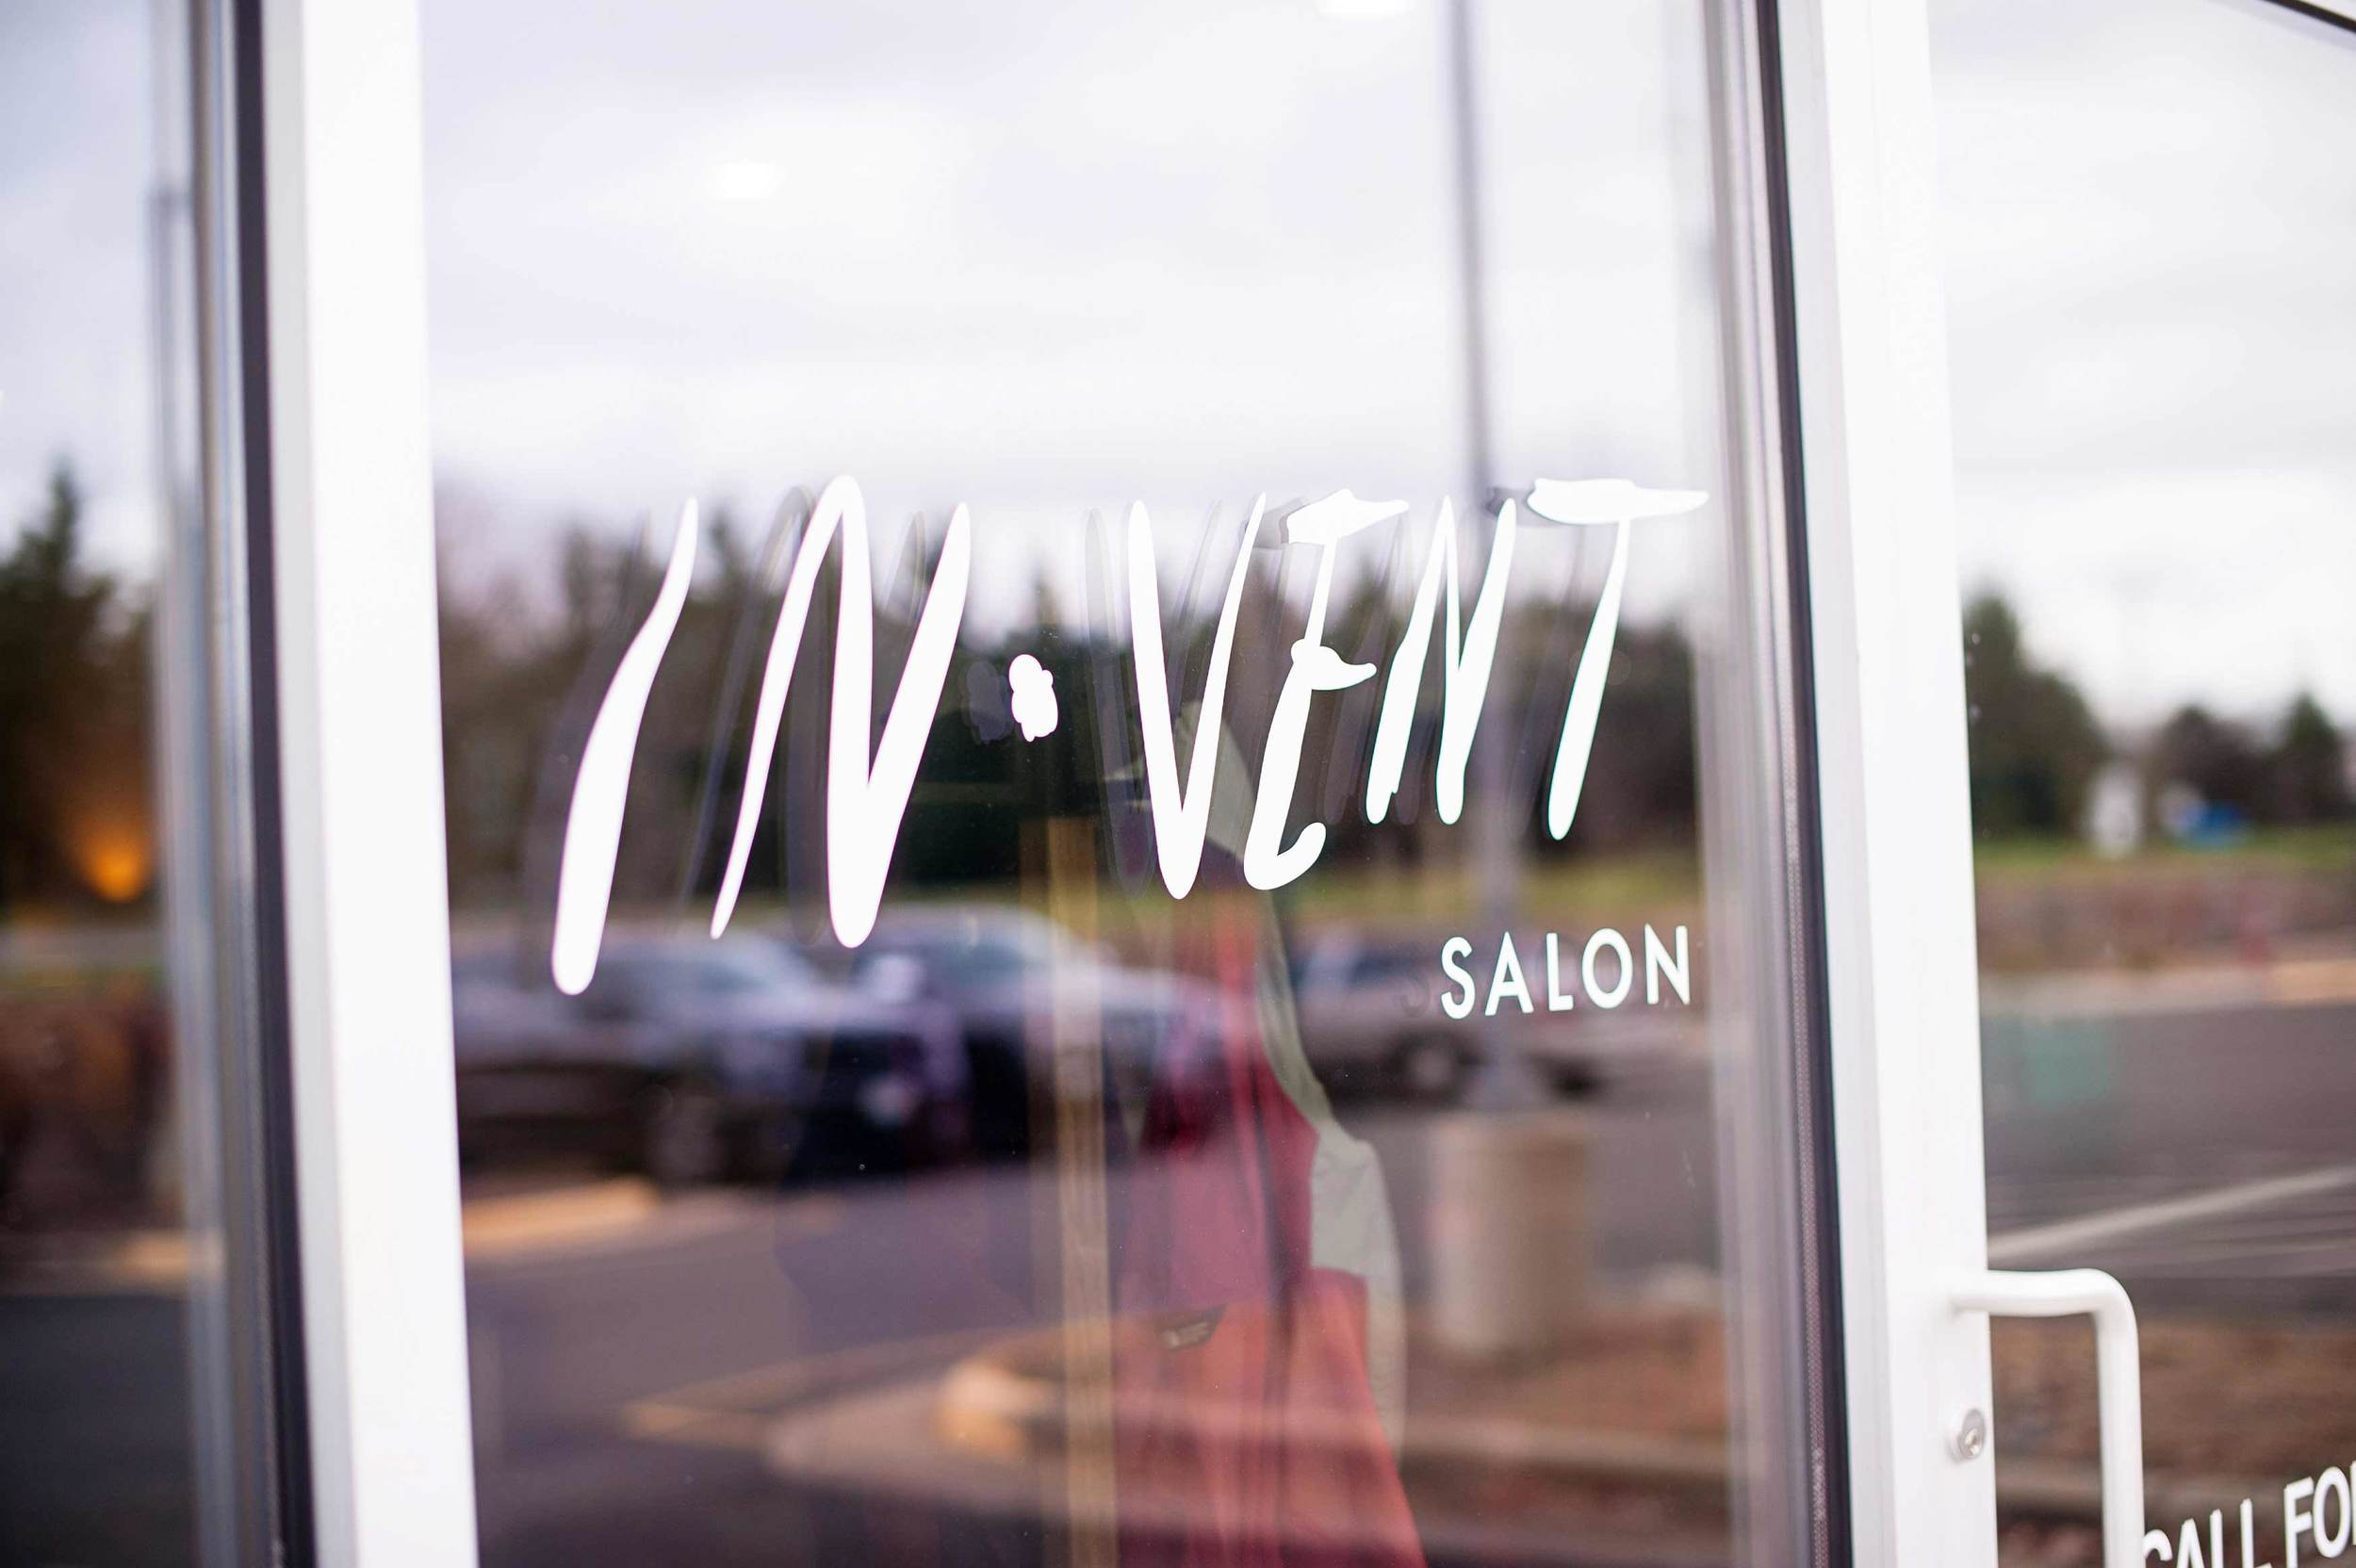 invent-salon-storefront-stylist-photo.jpg